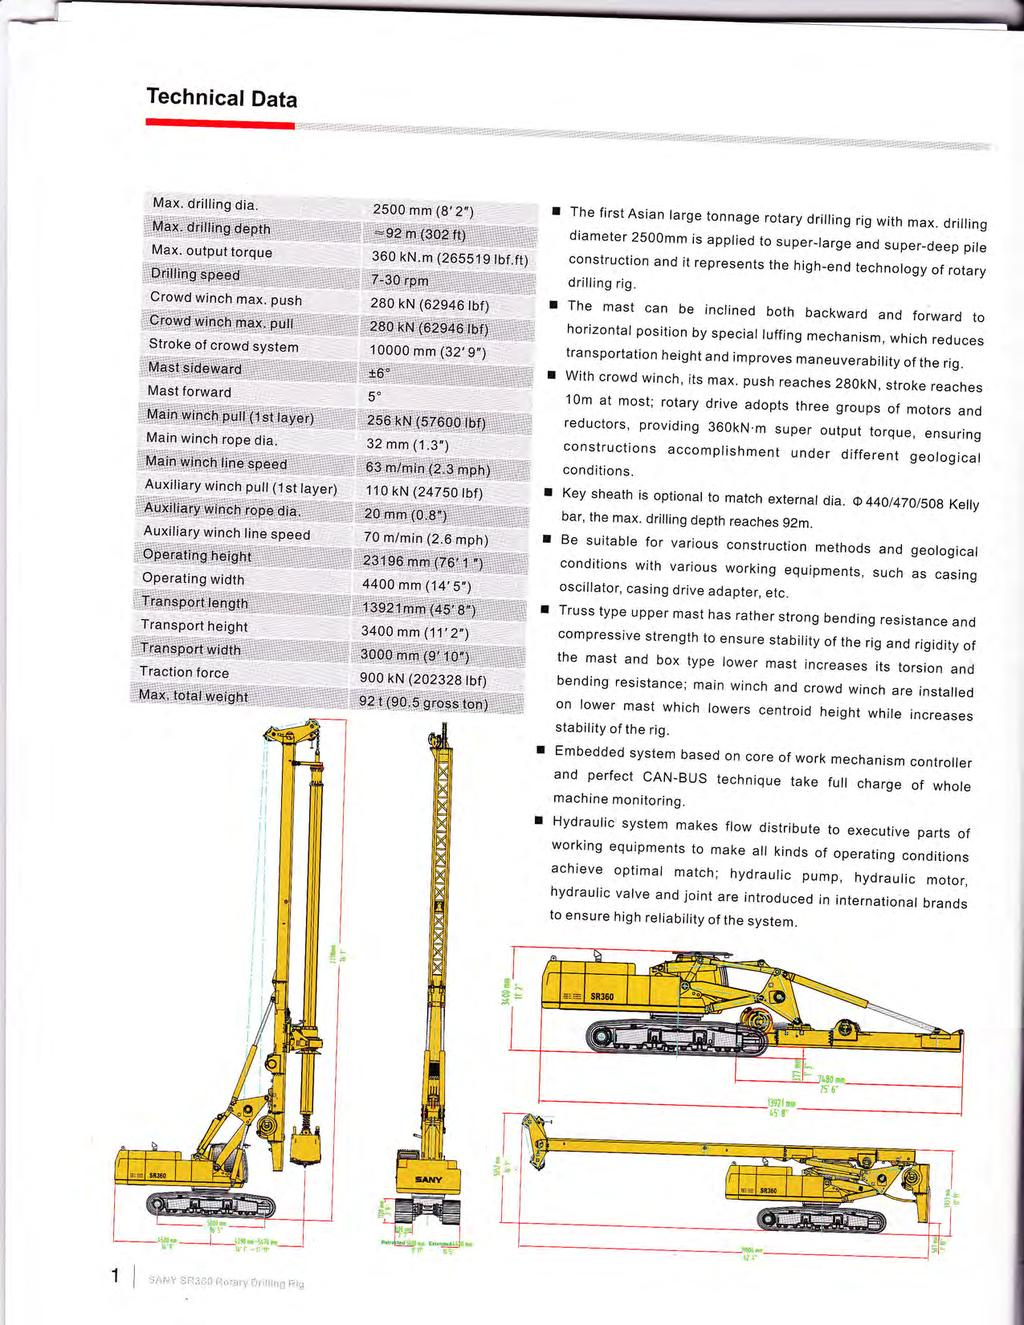 Technical Data r The first Asian large tonnage rotary drilling rig with max.